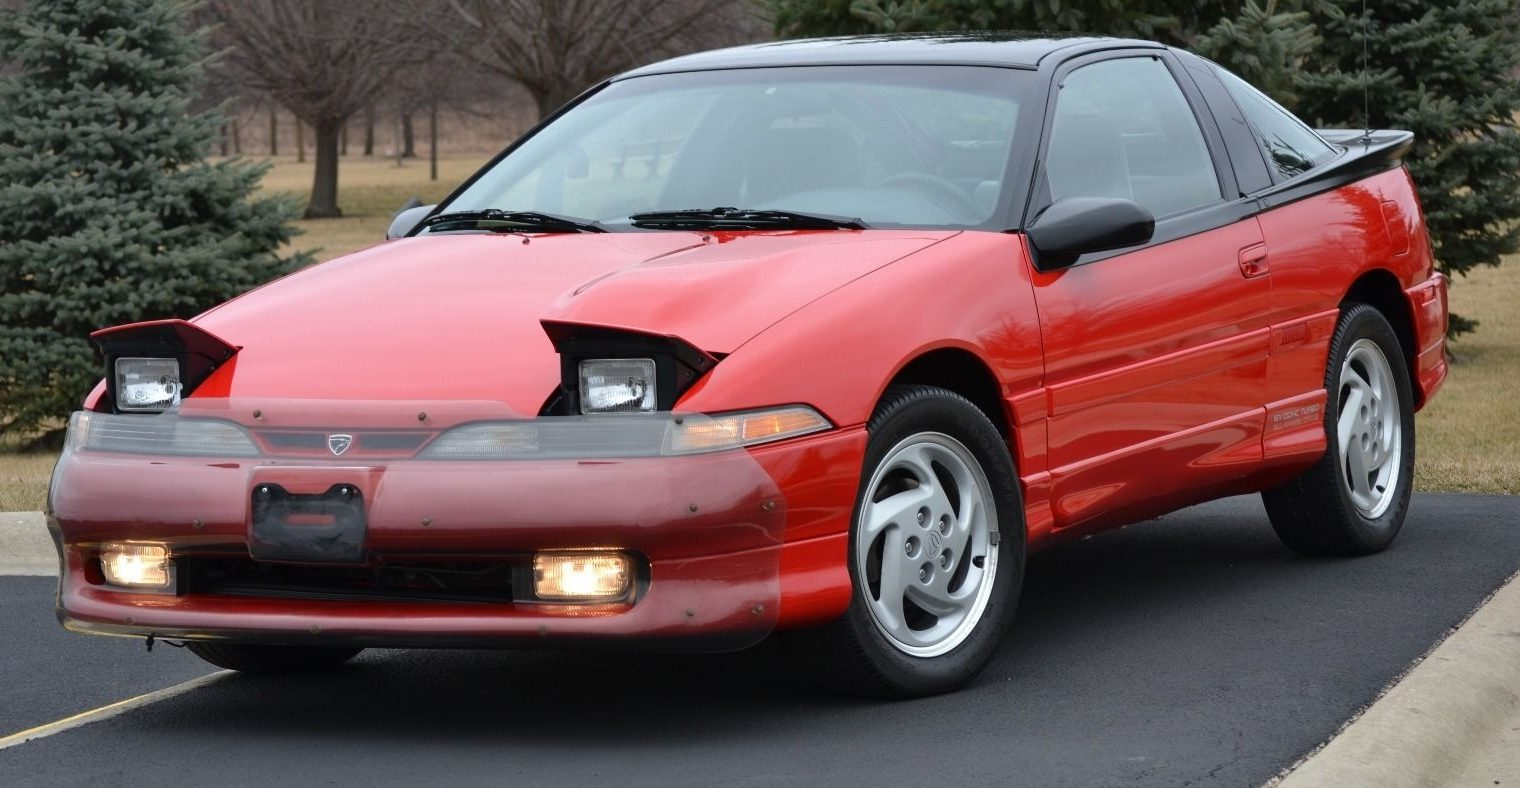 Eagle talon photo - 1